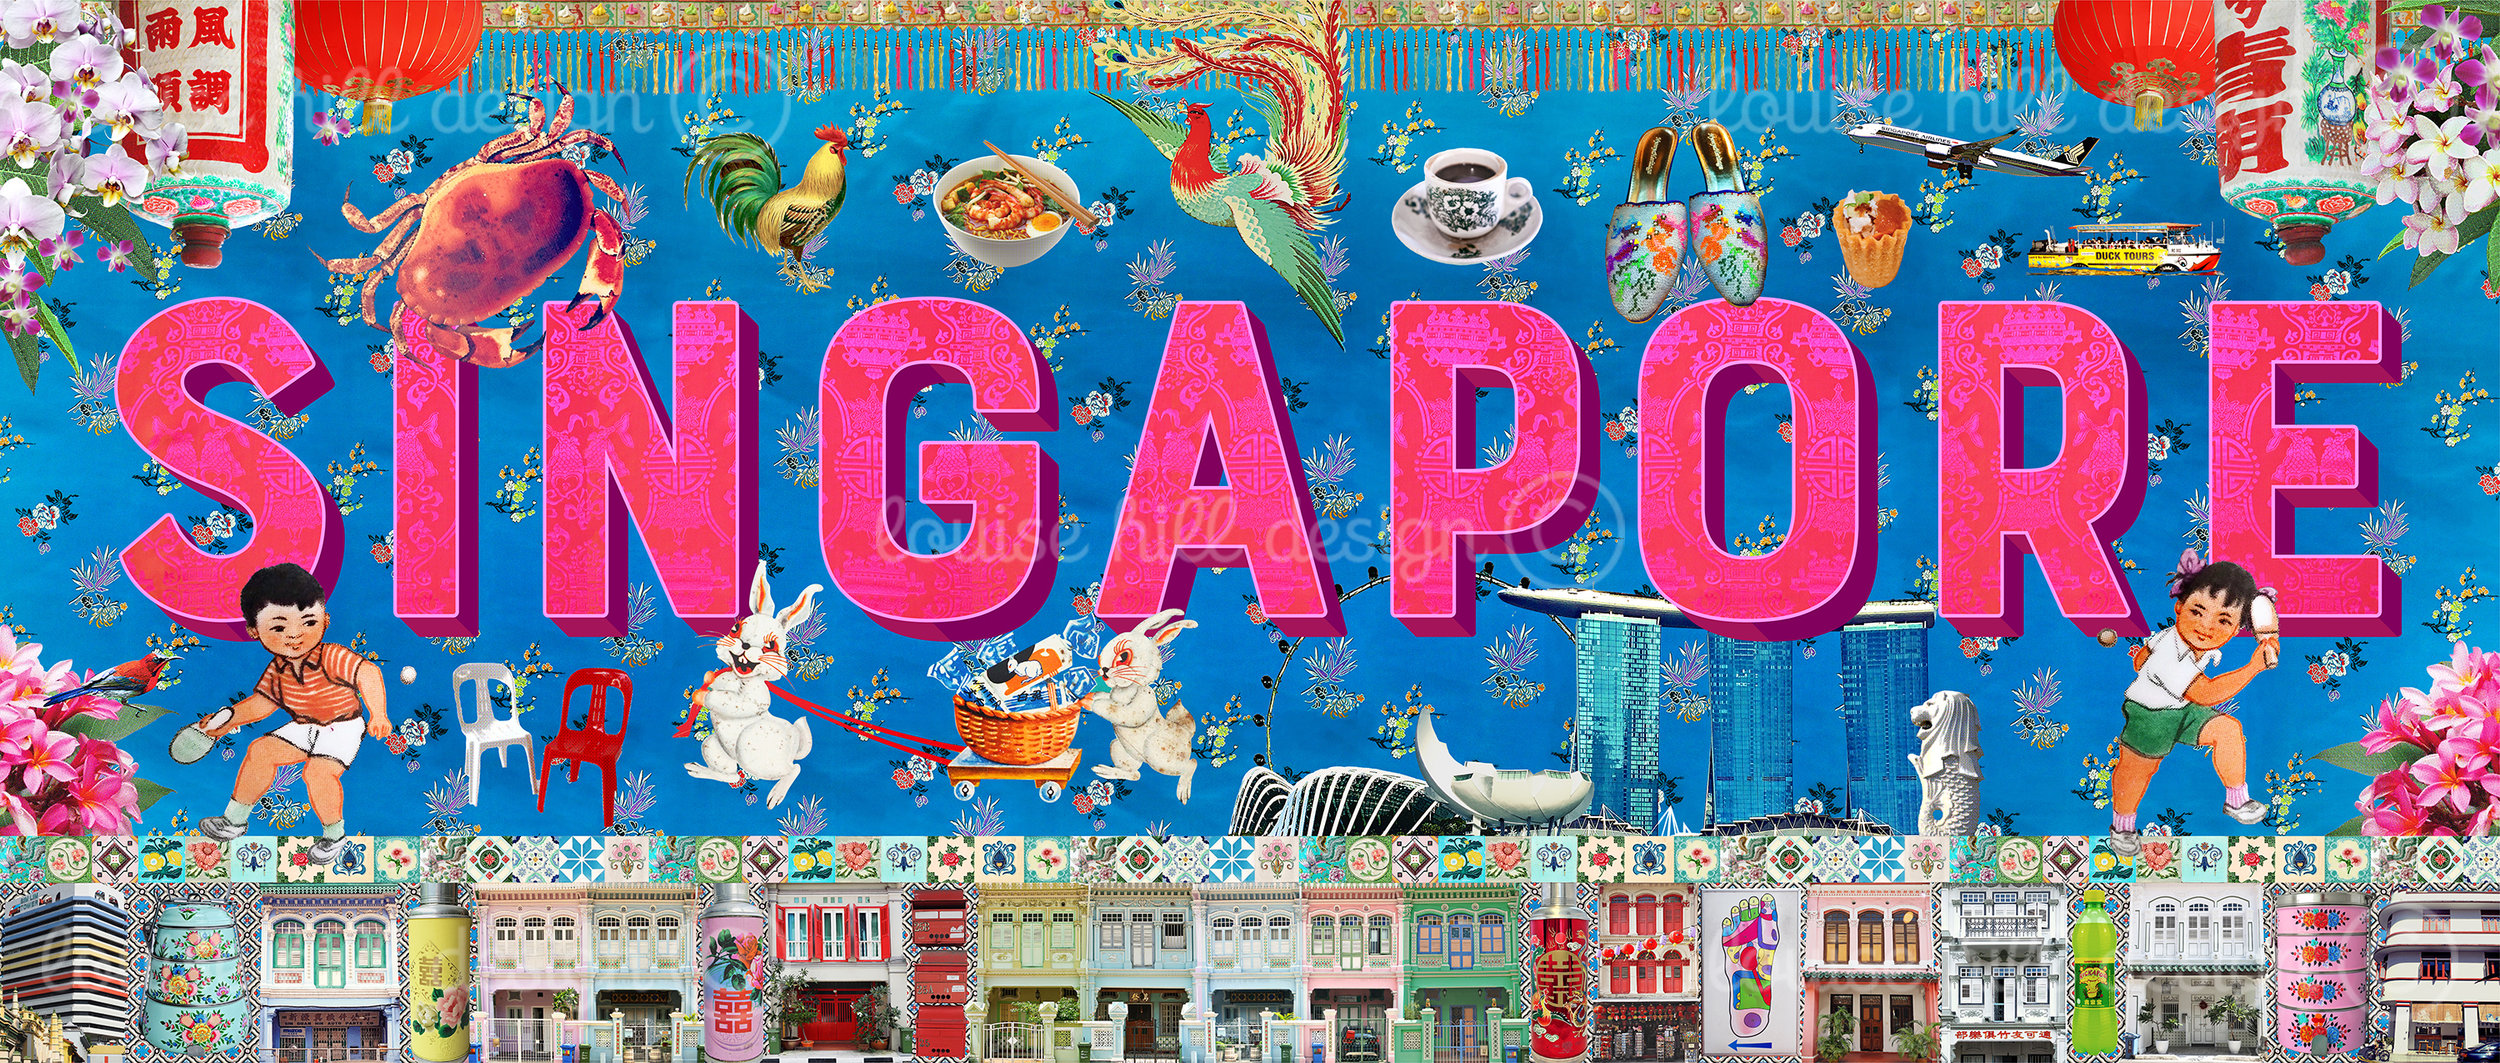 SINGAPORE TYPOGRAPHIC.150.WATERMARKED.jpg